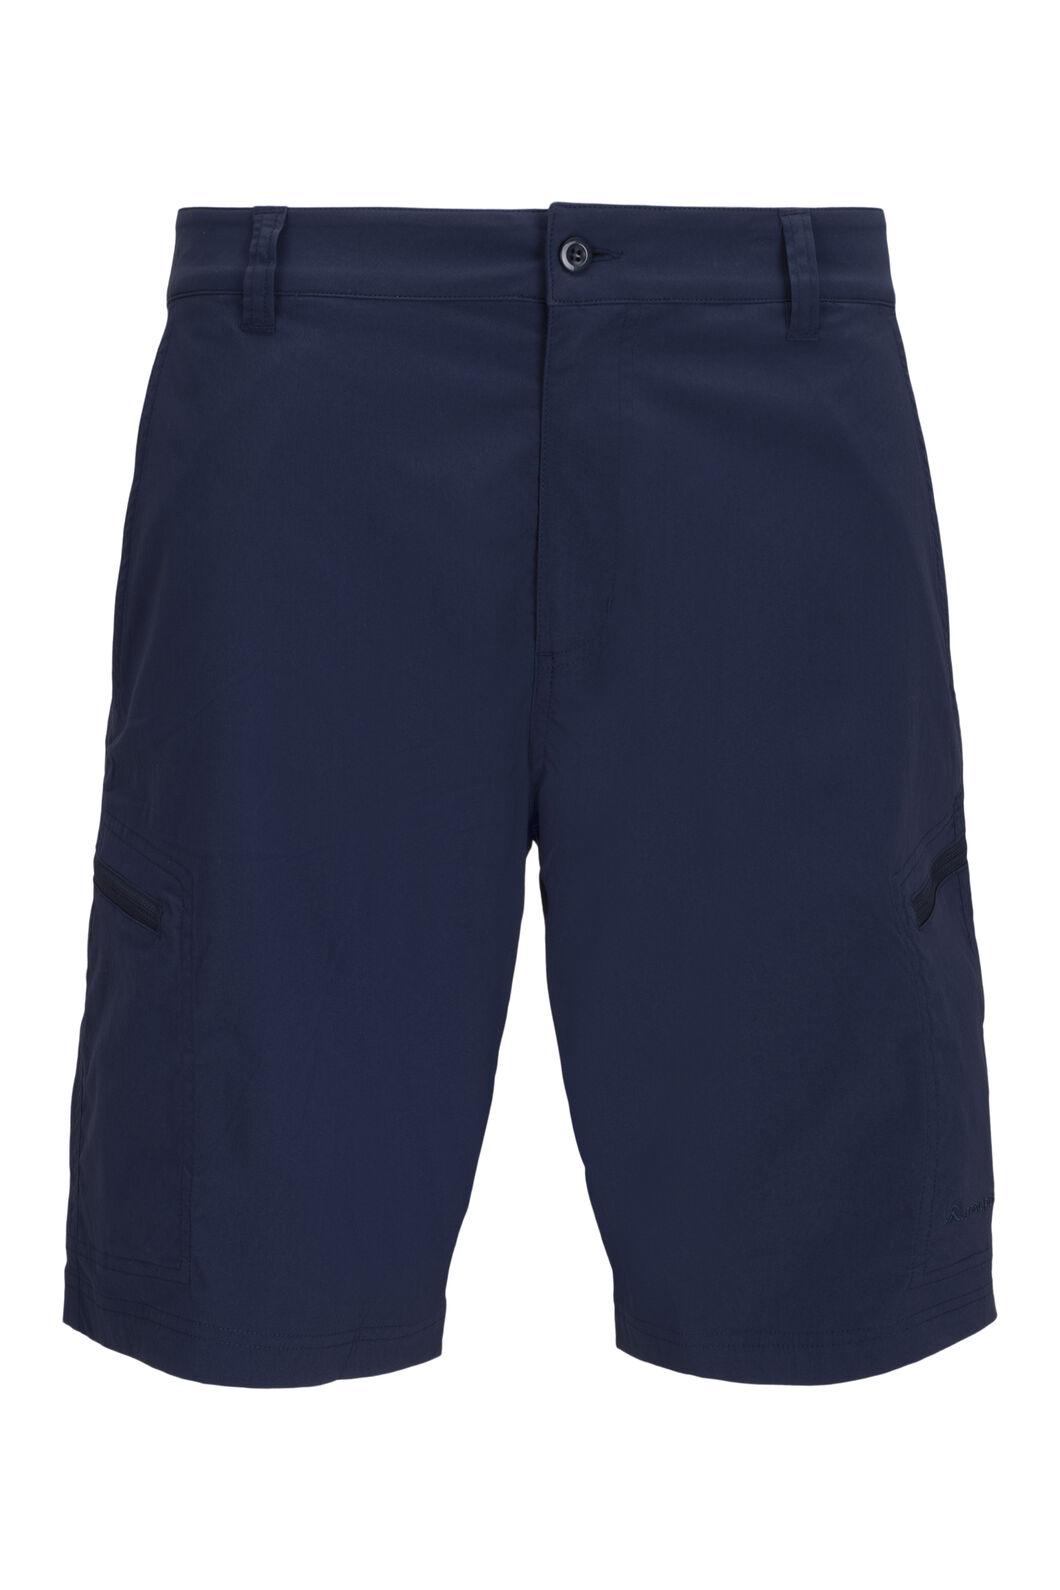 Macpac Drift Shorts — Men's, Black Iris, hi-res